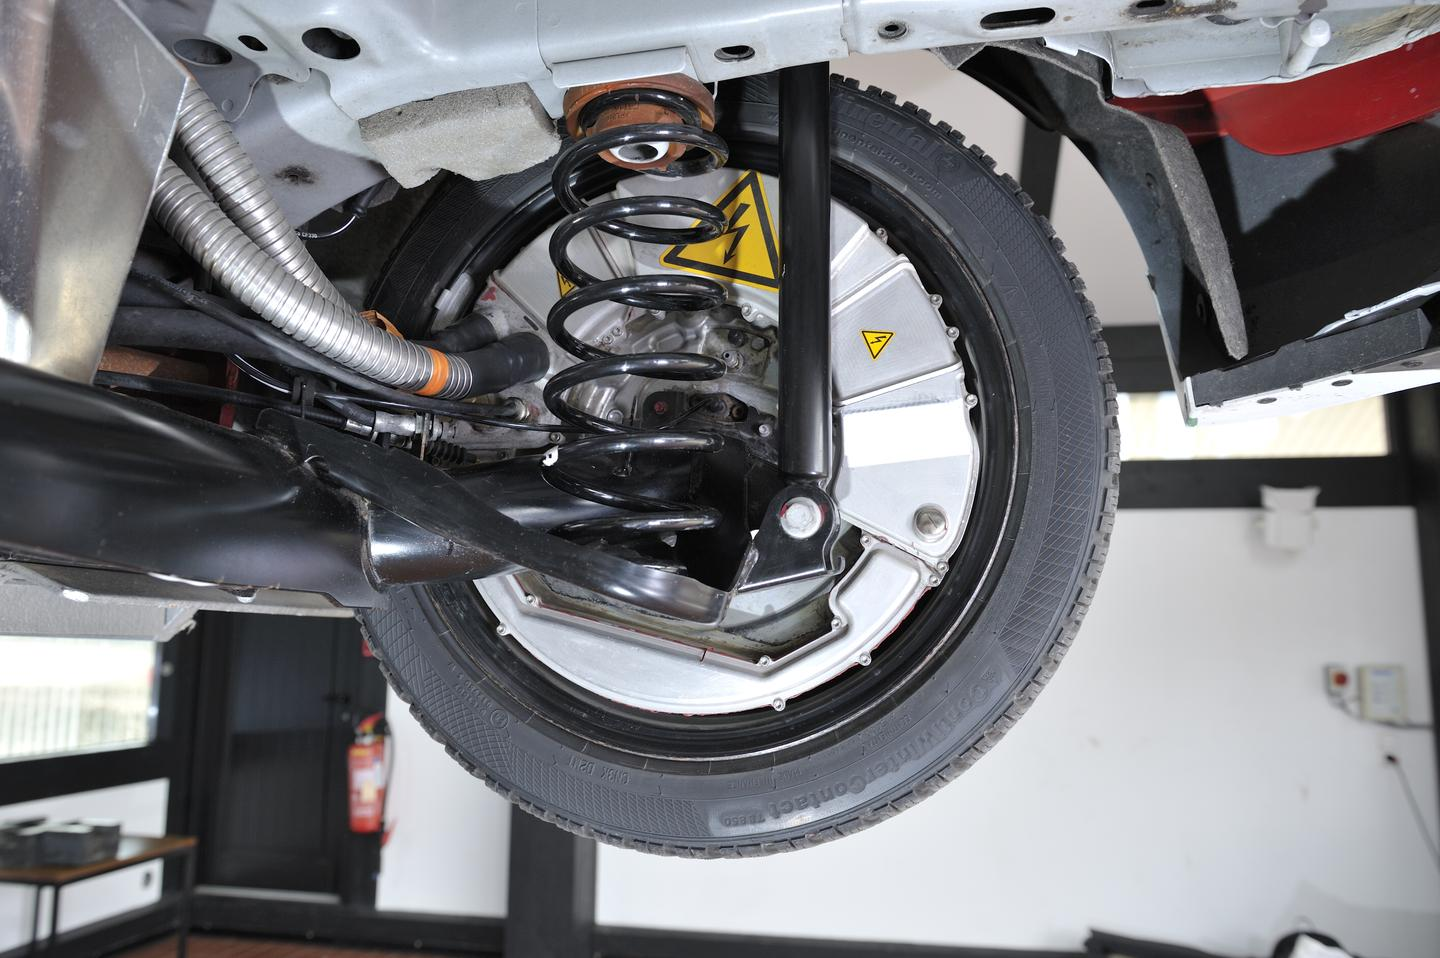 Warning stickers mark the electric hub motors in the rear wheels